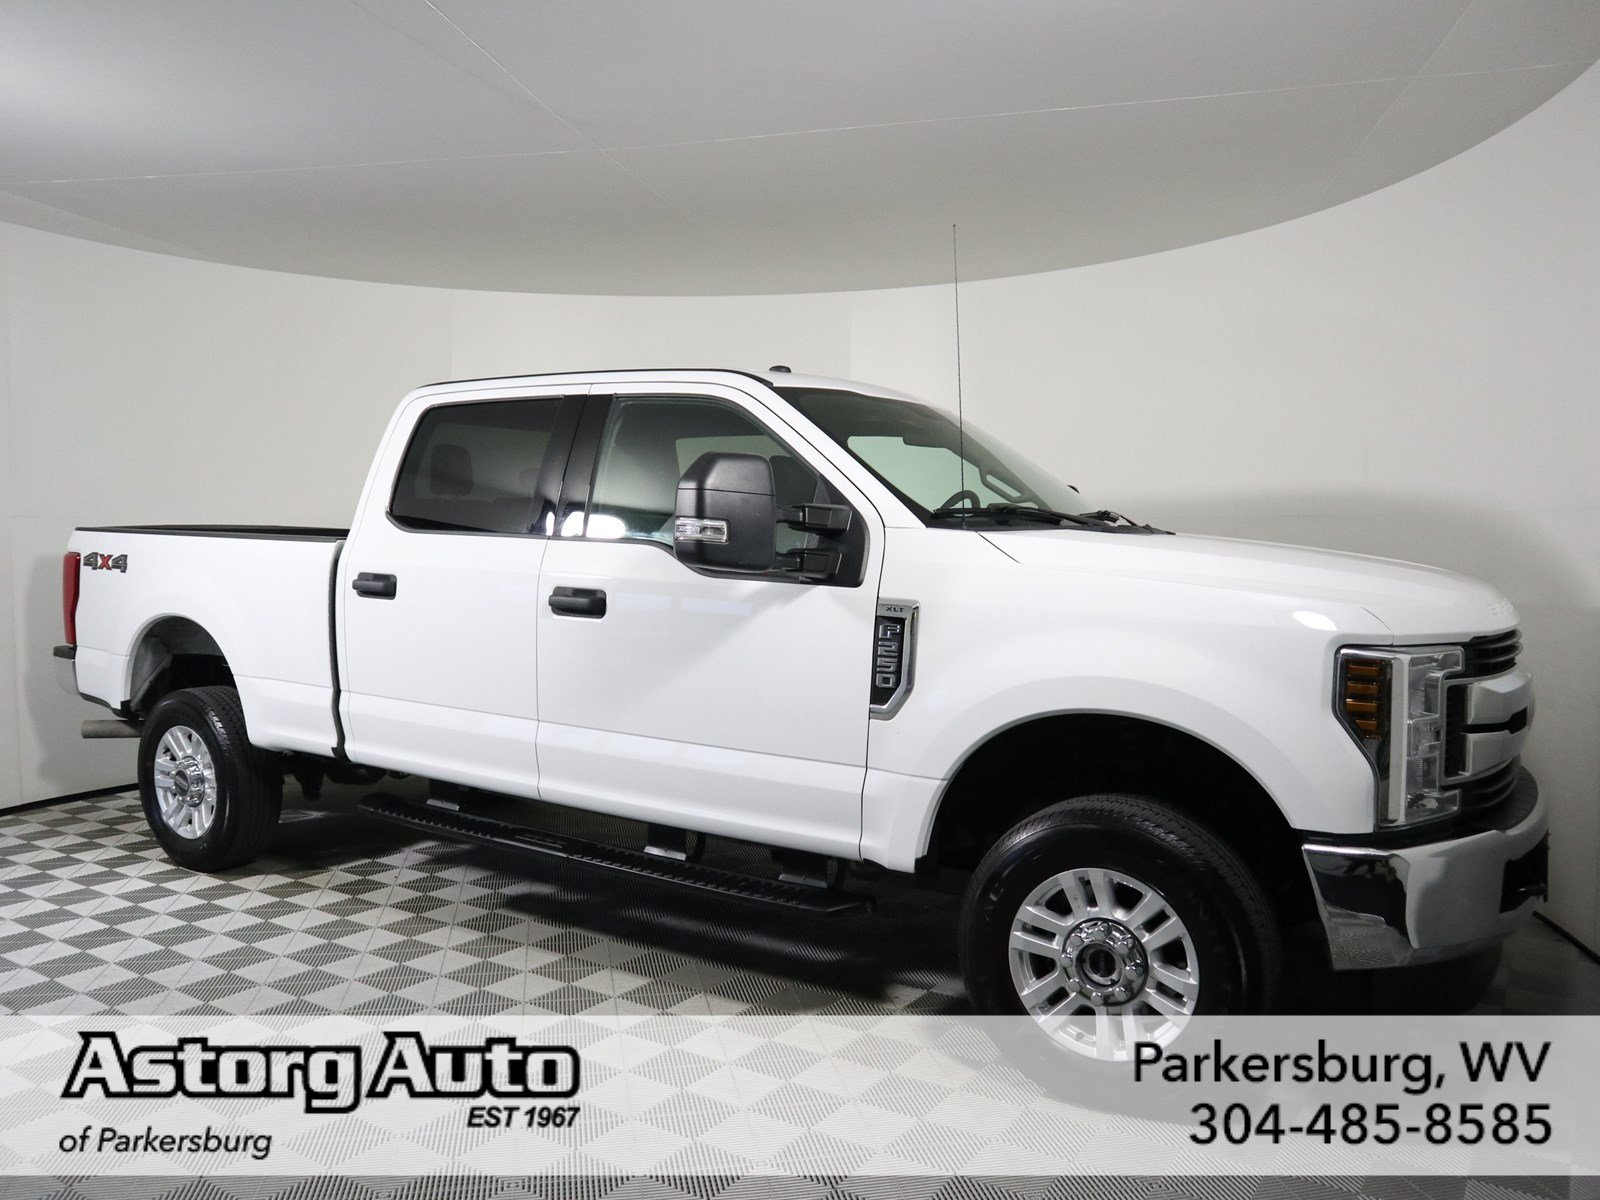 Certified Pre-Owned 2019 Ford Super Duty F-250 SRW XLT